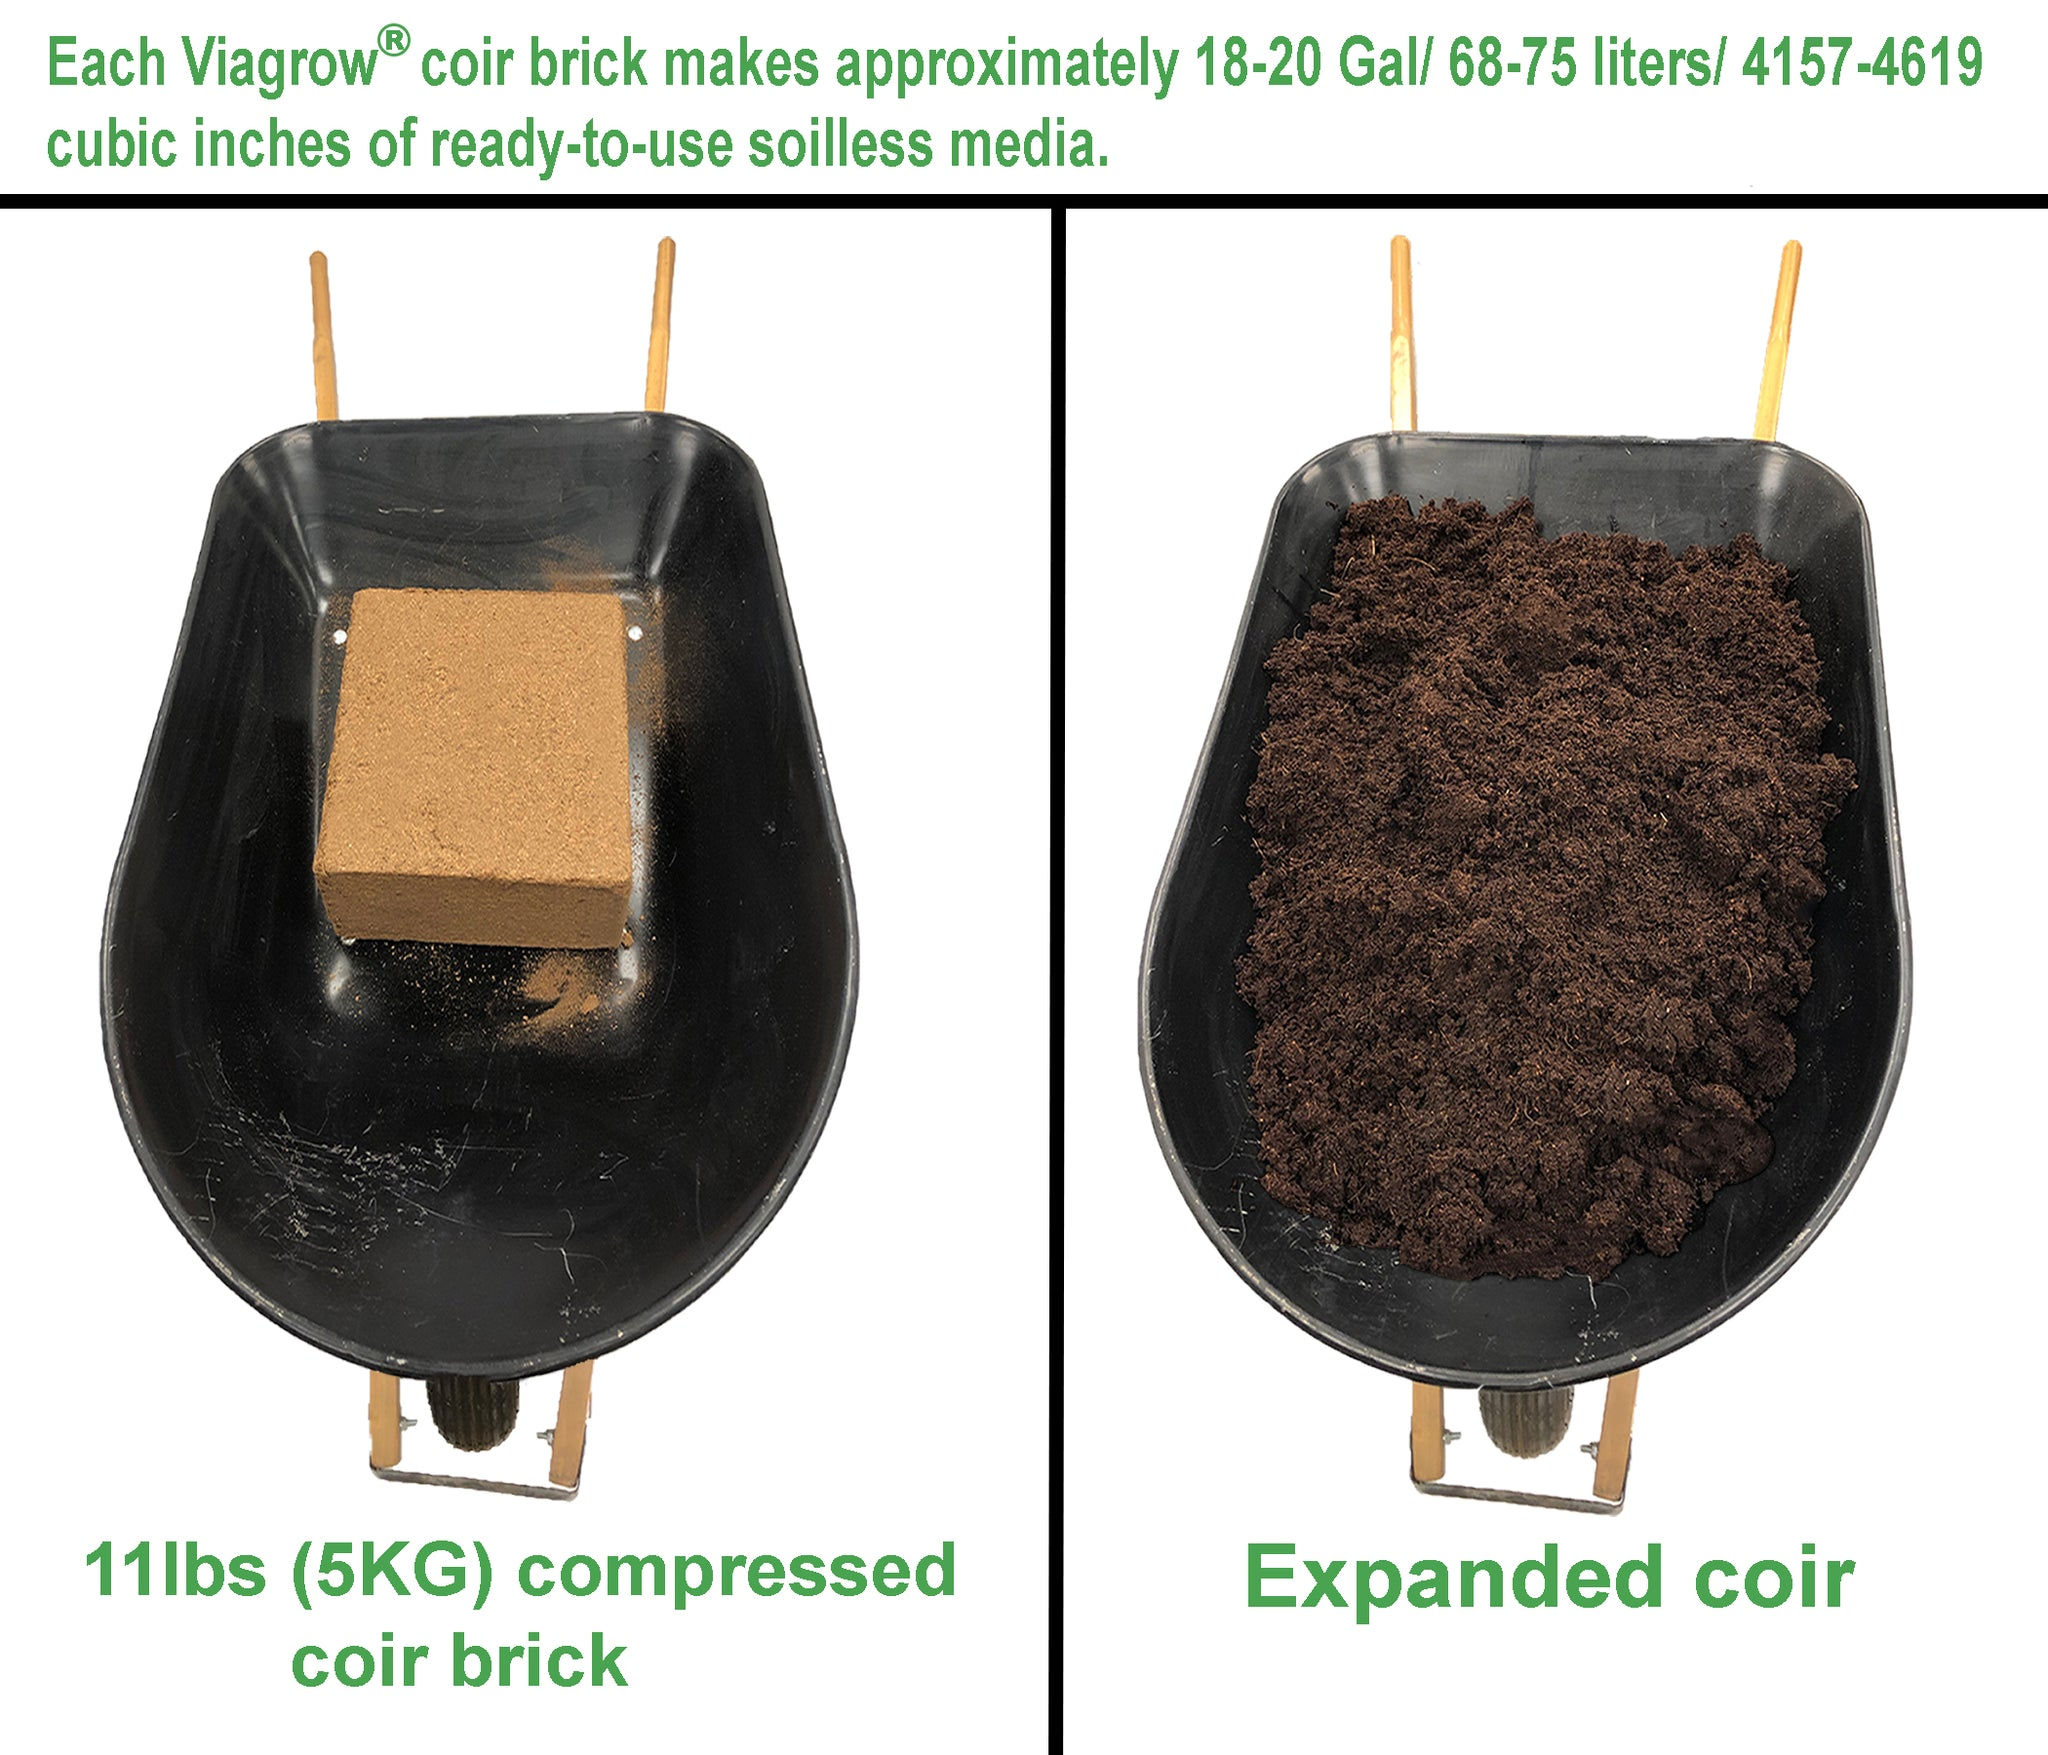 Viagrow Buffered Coco Coir, 5KG Compressed Premium Grow Media, 5KG/11lbs- makes 2 cubic ft / 72 qts / 18 gallons, Pallet